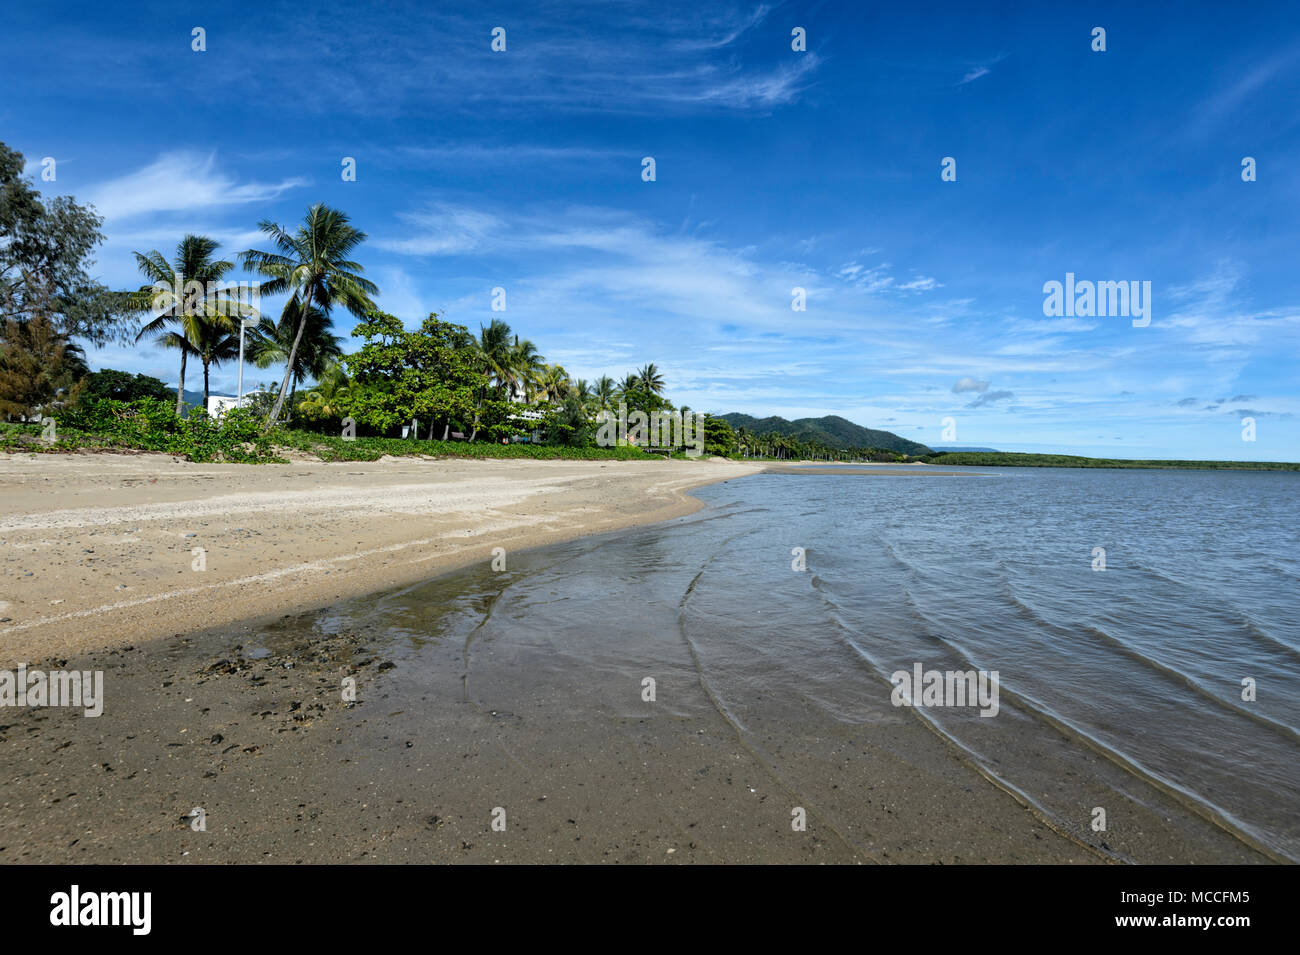 Playa de arena en el centro de Cairns, Far North Queensland, FNQ, Queensland, Australia Imagen De Stock